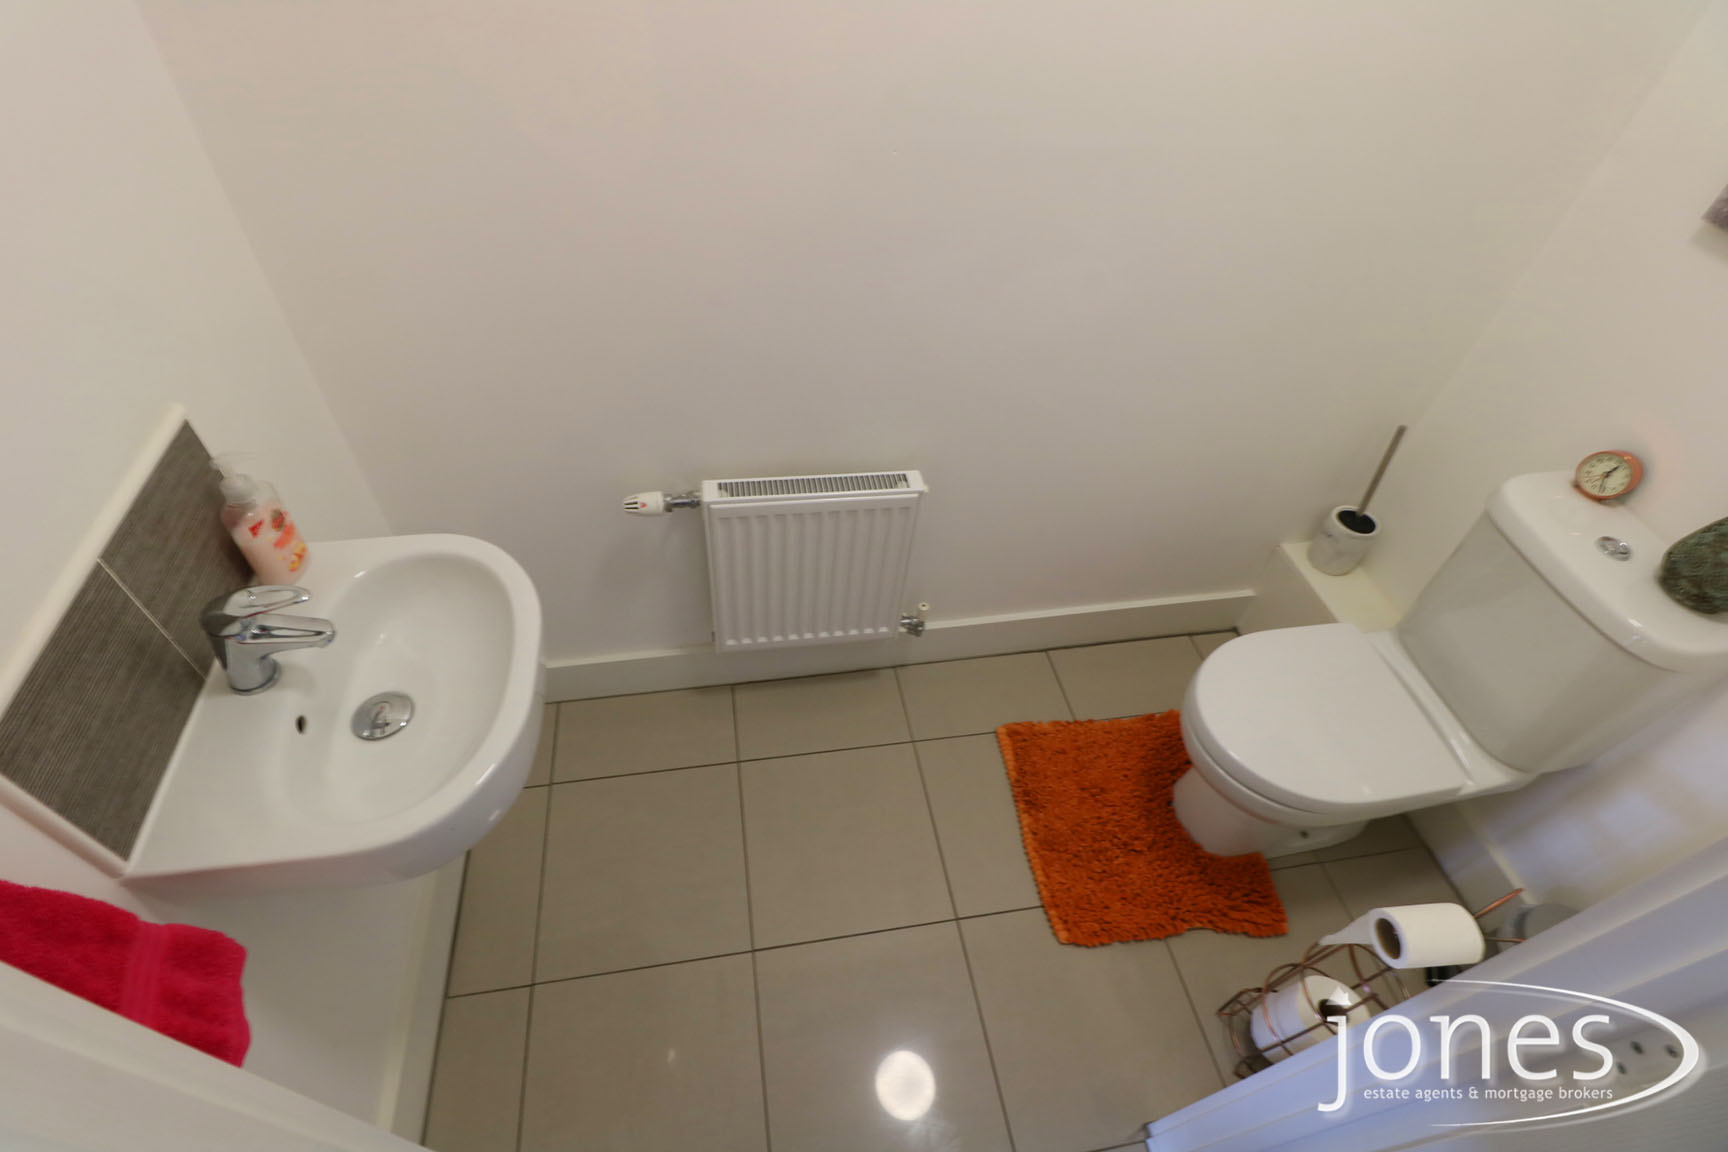 Home for Sale Let - Photo 09 Brookby Court, ,Stockton on Tees,TS18 2SX